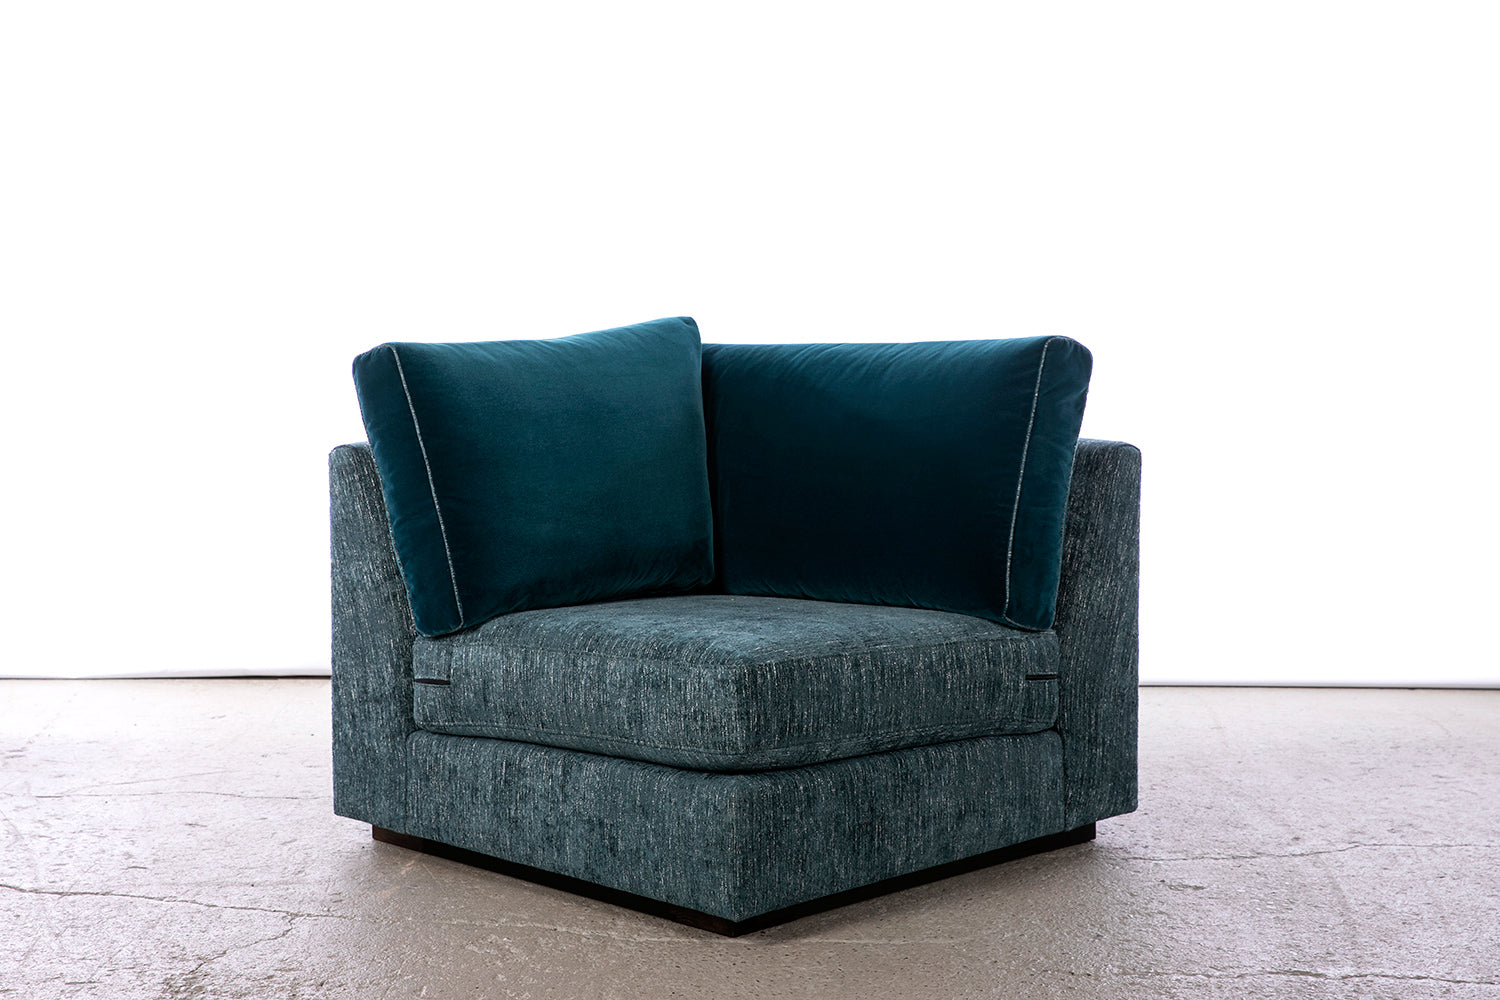 ffabb Coasty Slim corner chair modular Sectional sofa in peacock mohair/chenille